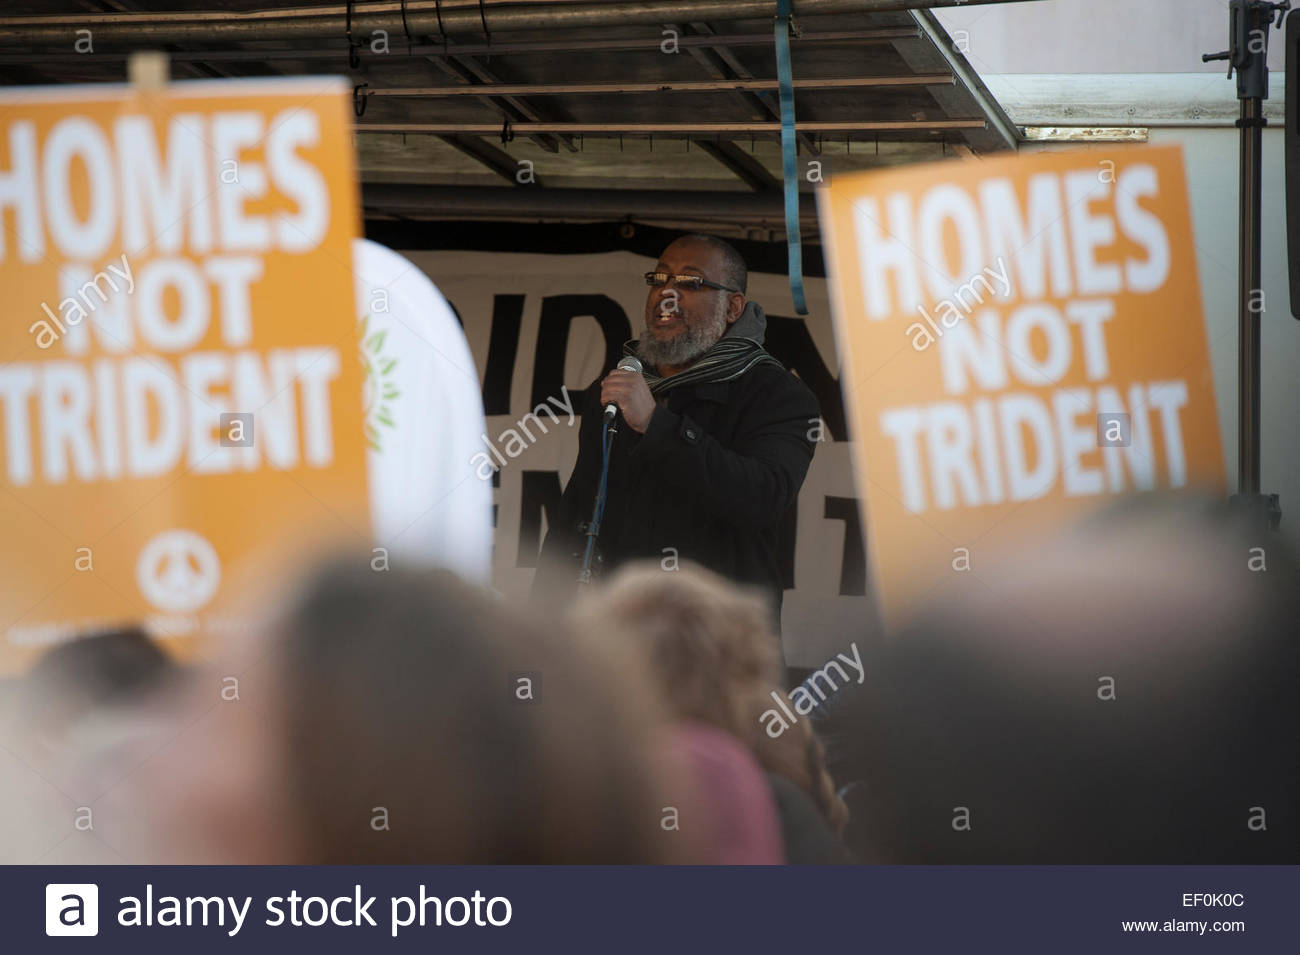 Parliament Square, Westminster, City of London, UK. 24 January 2015. Wrap Up Trident Demonstration. Khalil Charles, - Stock Image